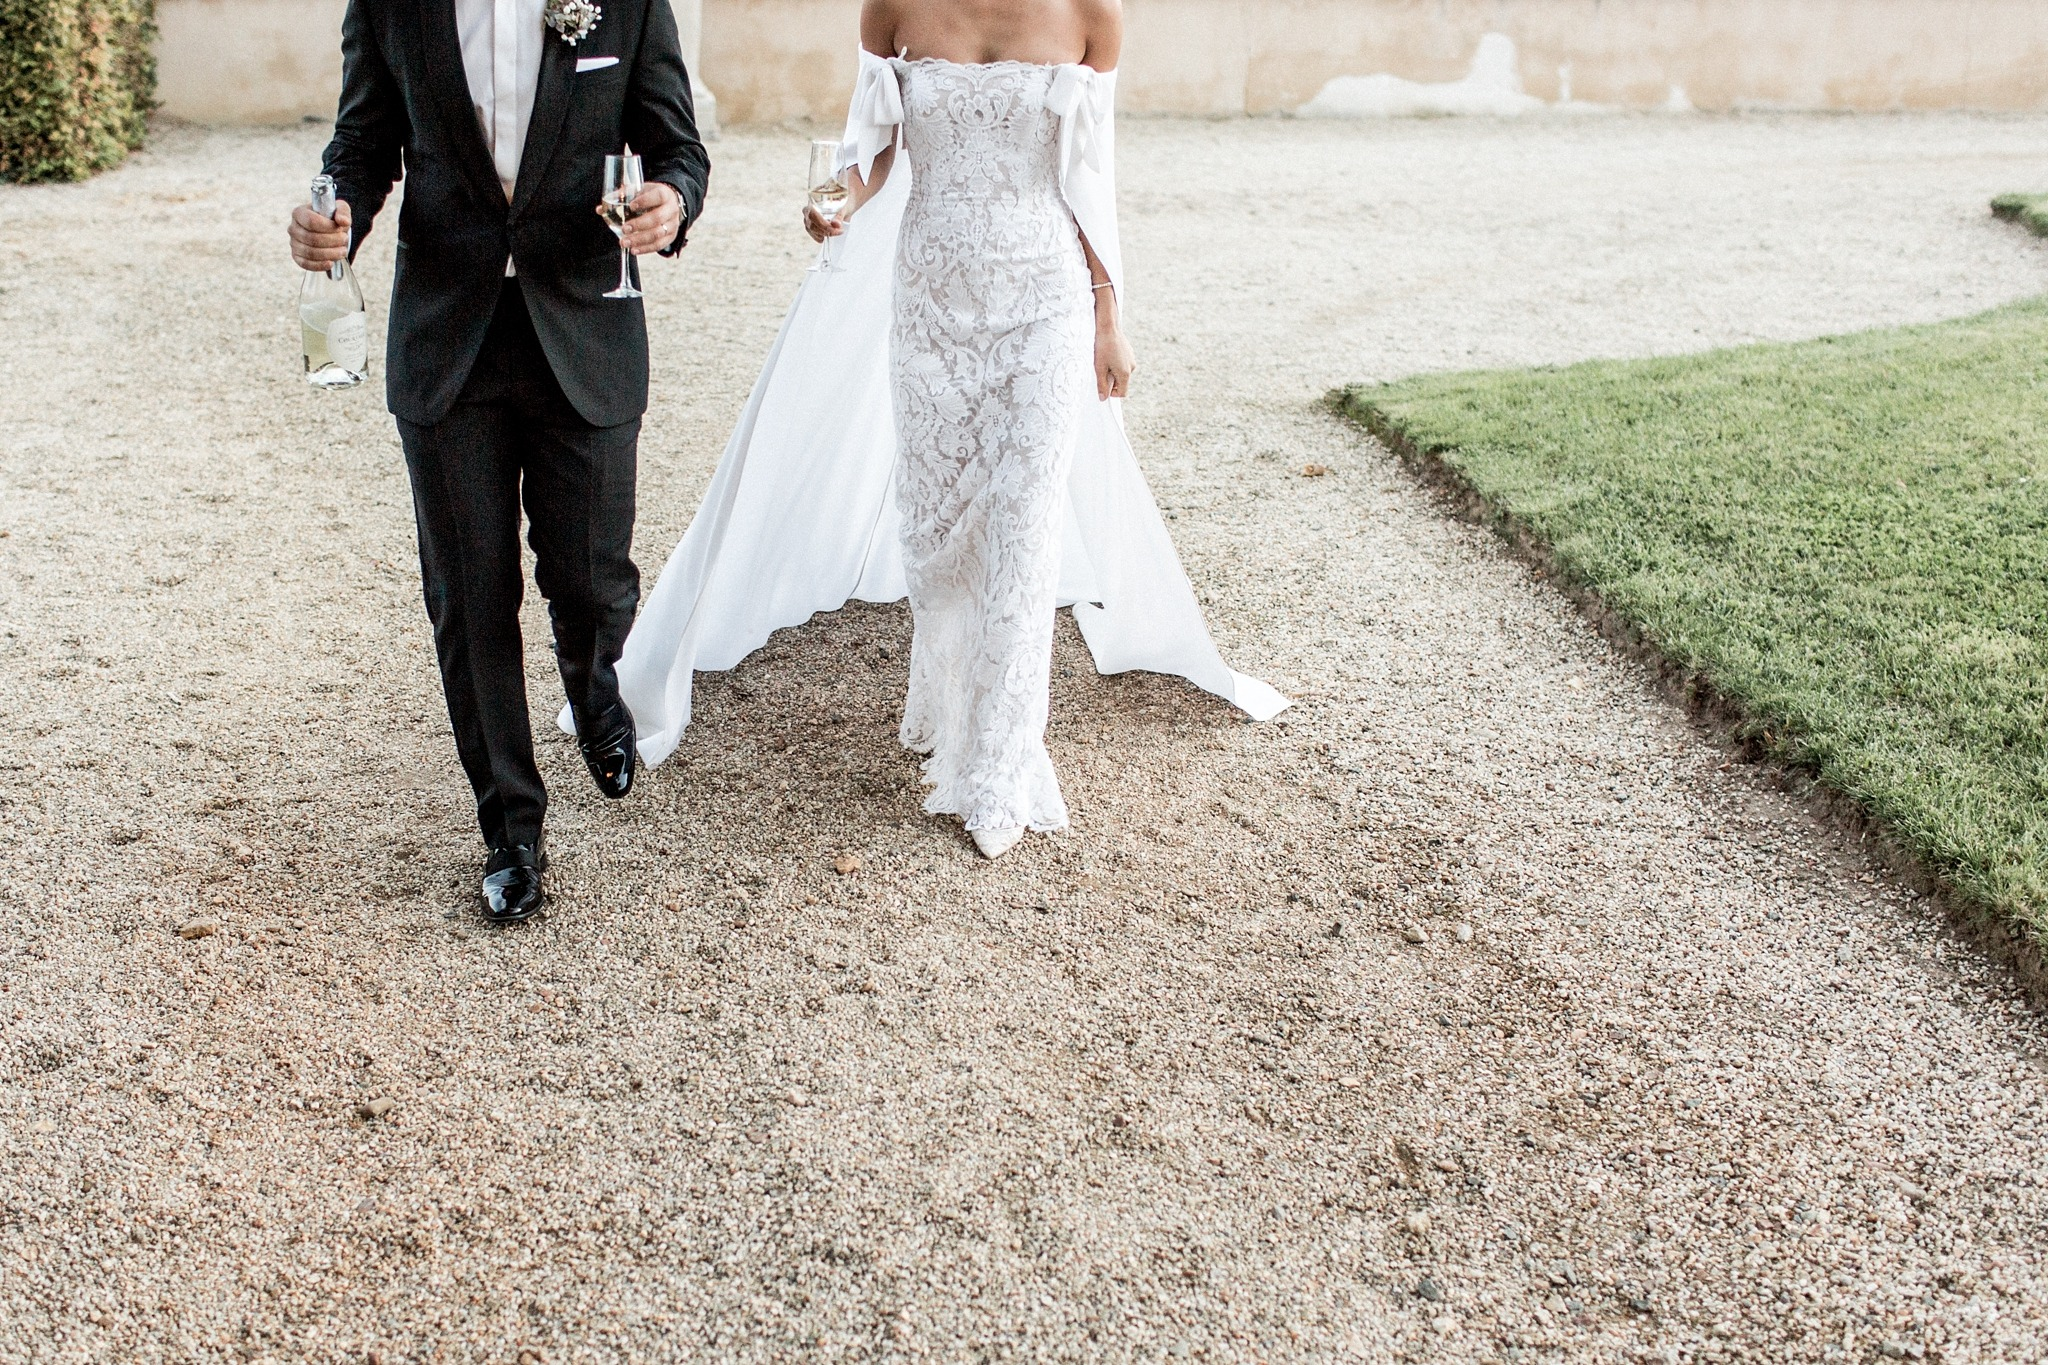 chateau-wedding-france-chanel-eric-as-seen-on-vogue-with-sarah-falugo-photographer_0078